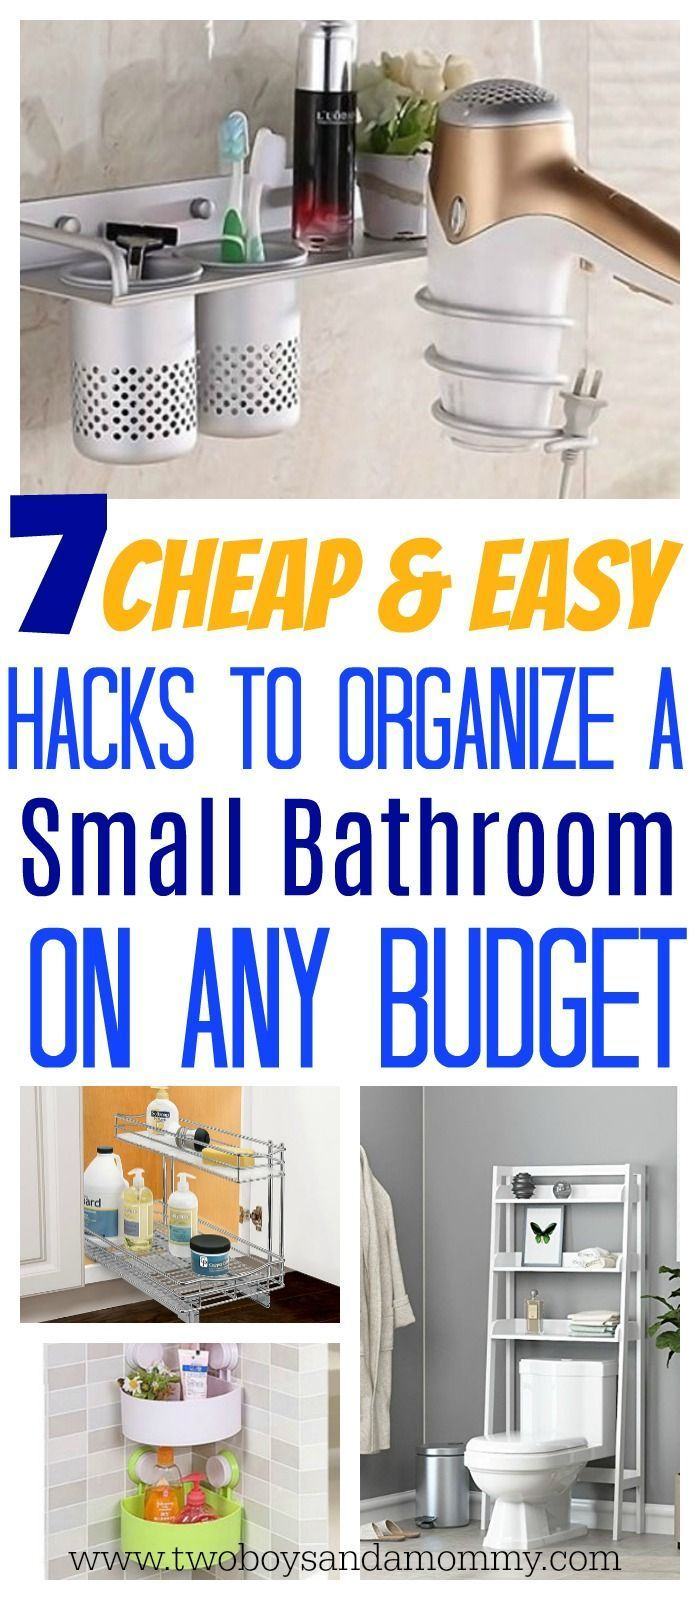 easy hacks to organize a small bathroom small bathroom on clever small apartment living organization bathroom ideas unique methods for an organized bathroom id=98045